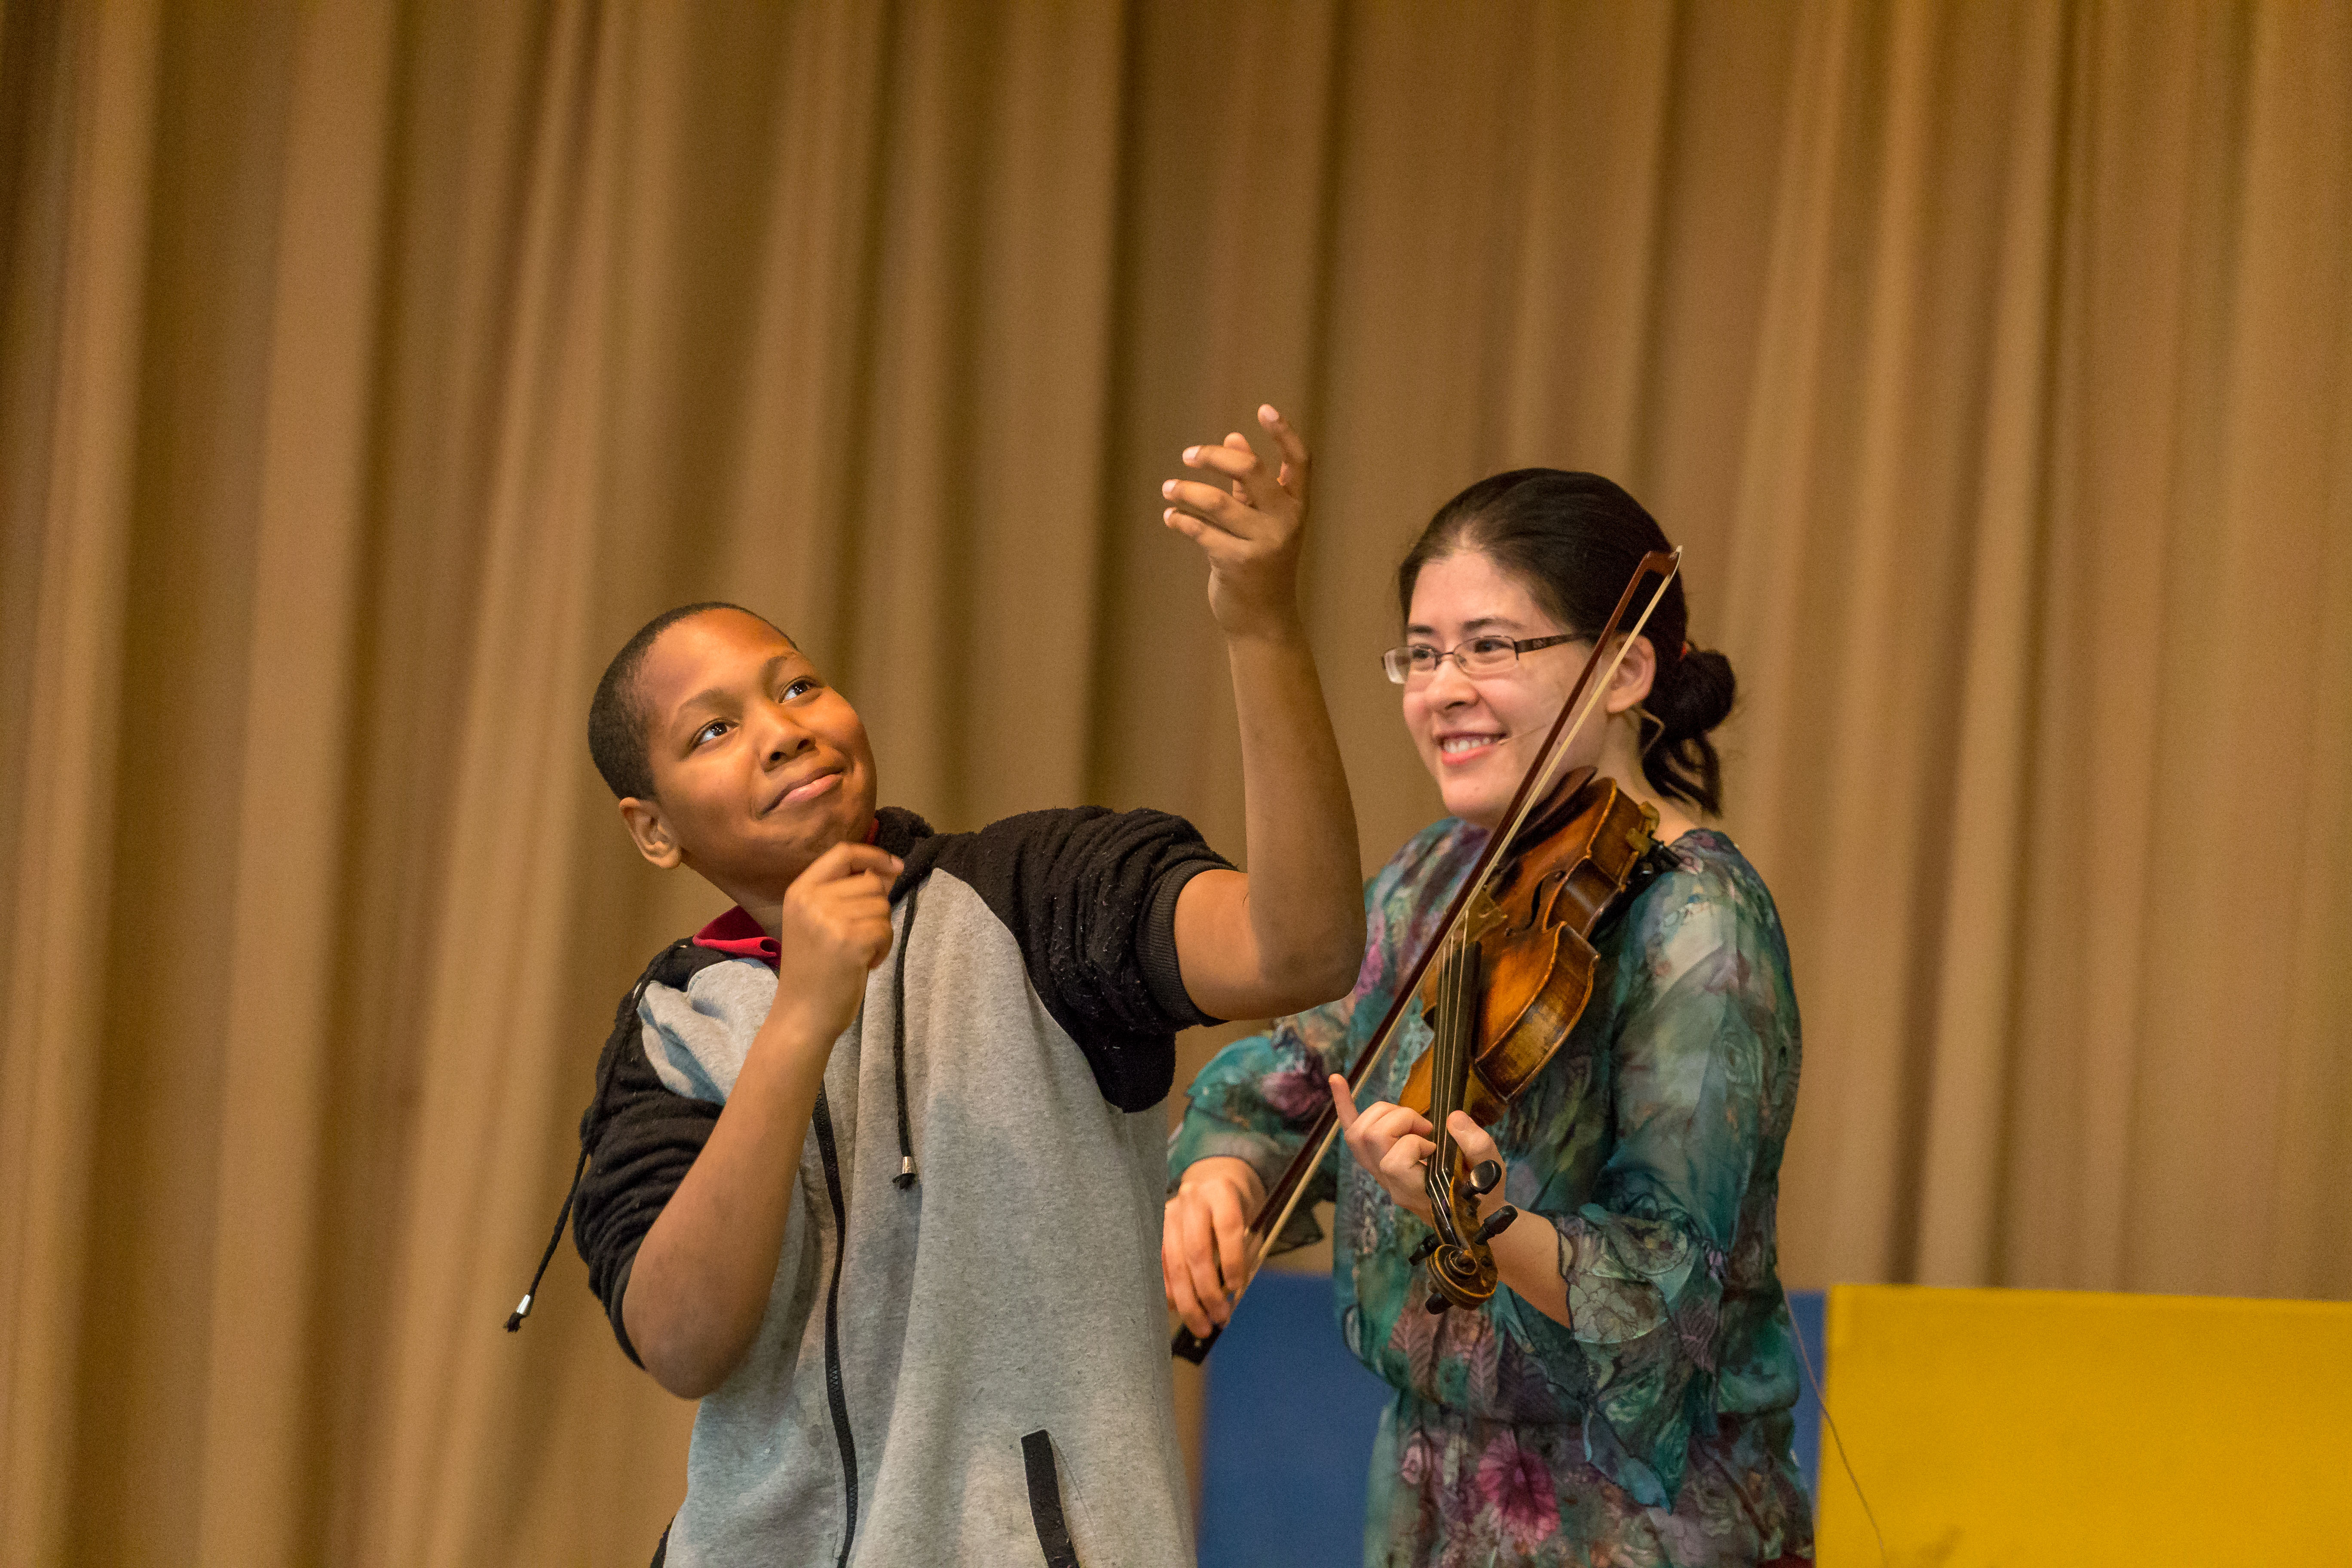 A child with his hands in the air with a woman playing the violin